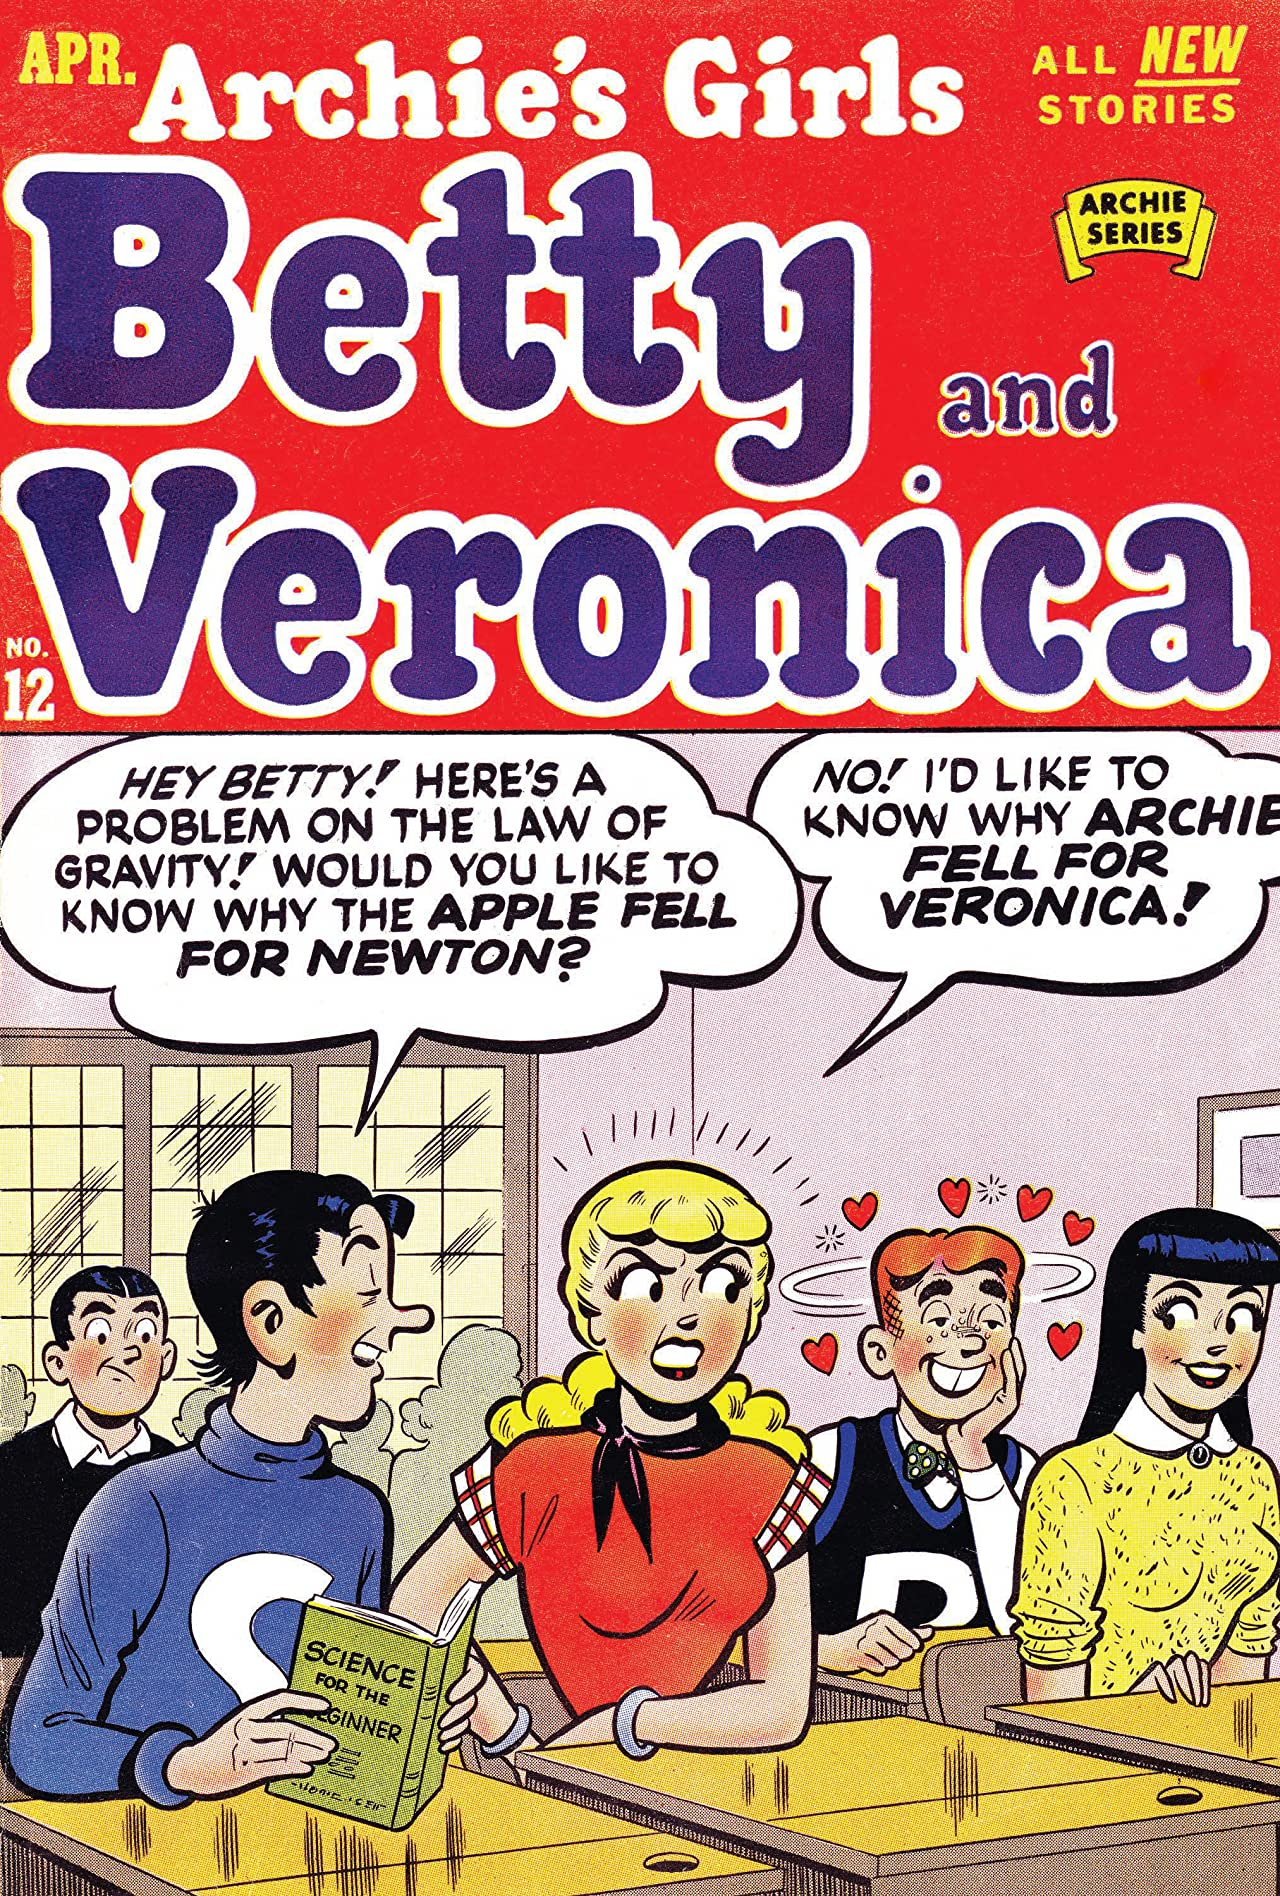 Archie's Girls Betty & Veronica #12